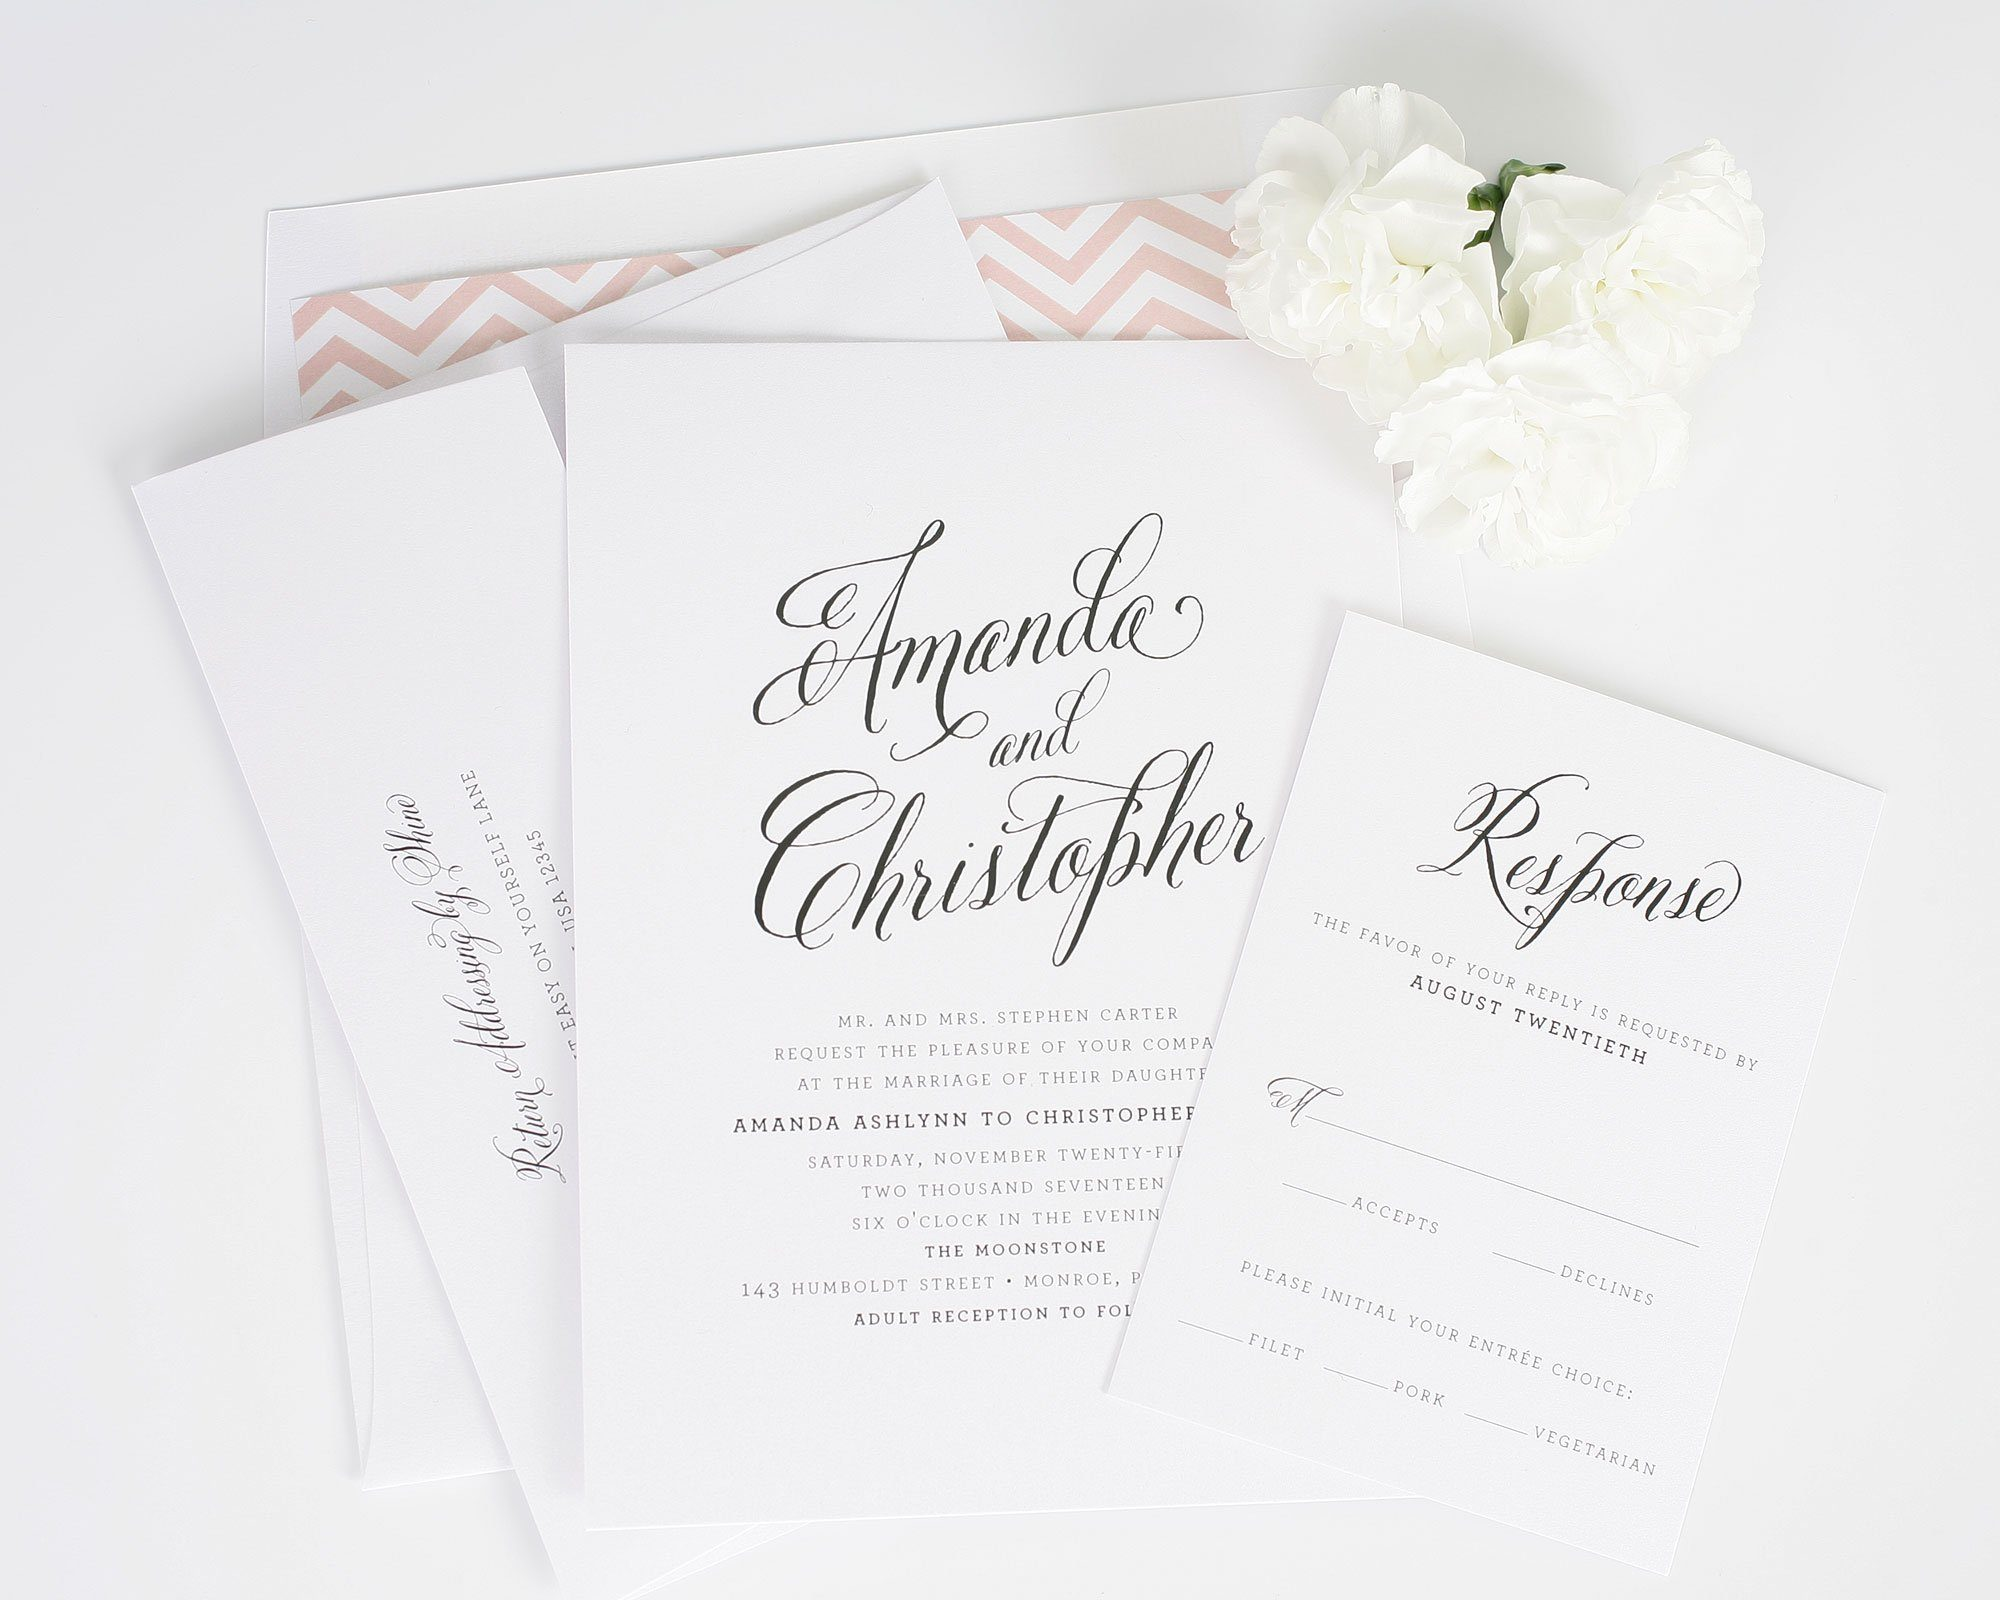 Rustic blush wedding invitation with large script